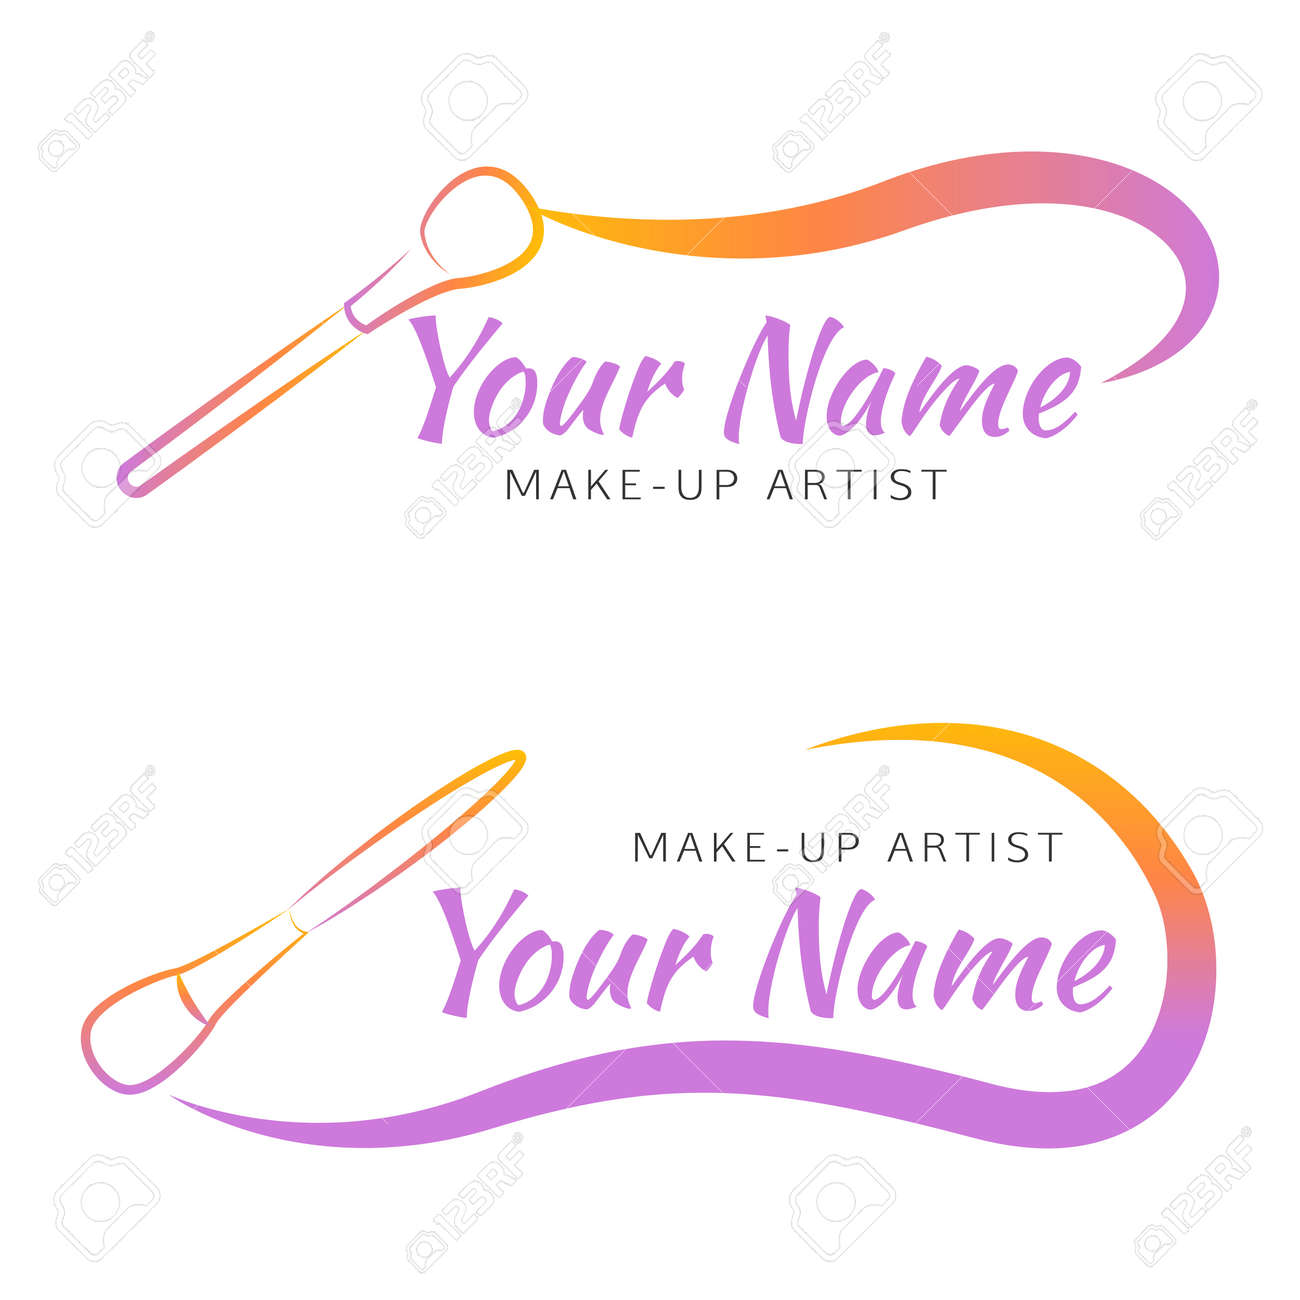 Makeup Brush With Curved Line Abstract Design Concept For Beauty Salon Artist